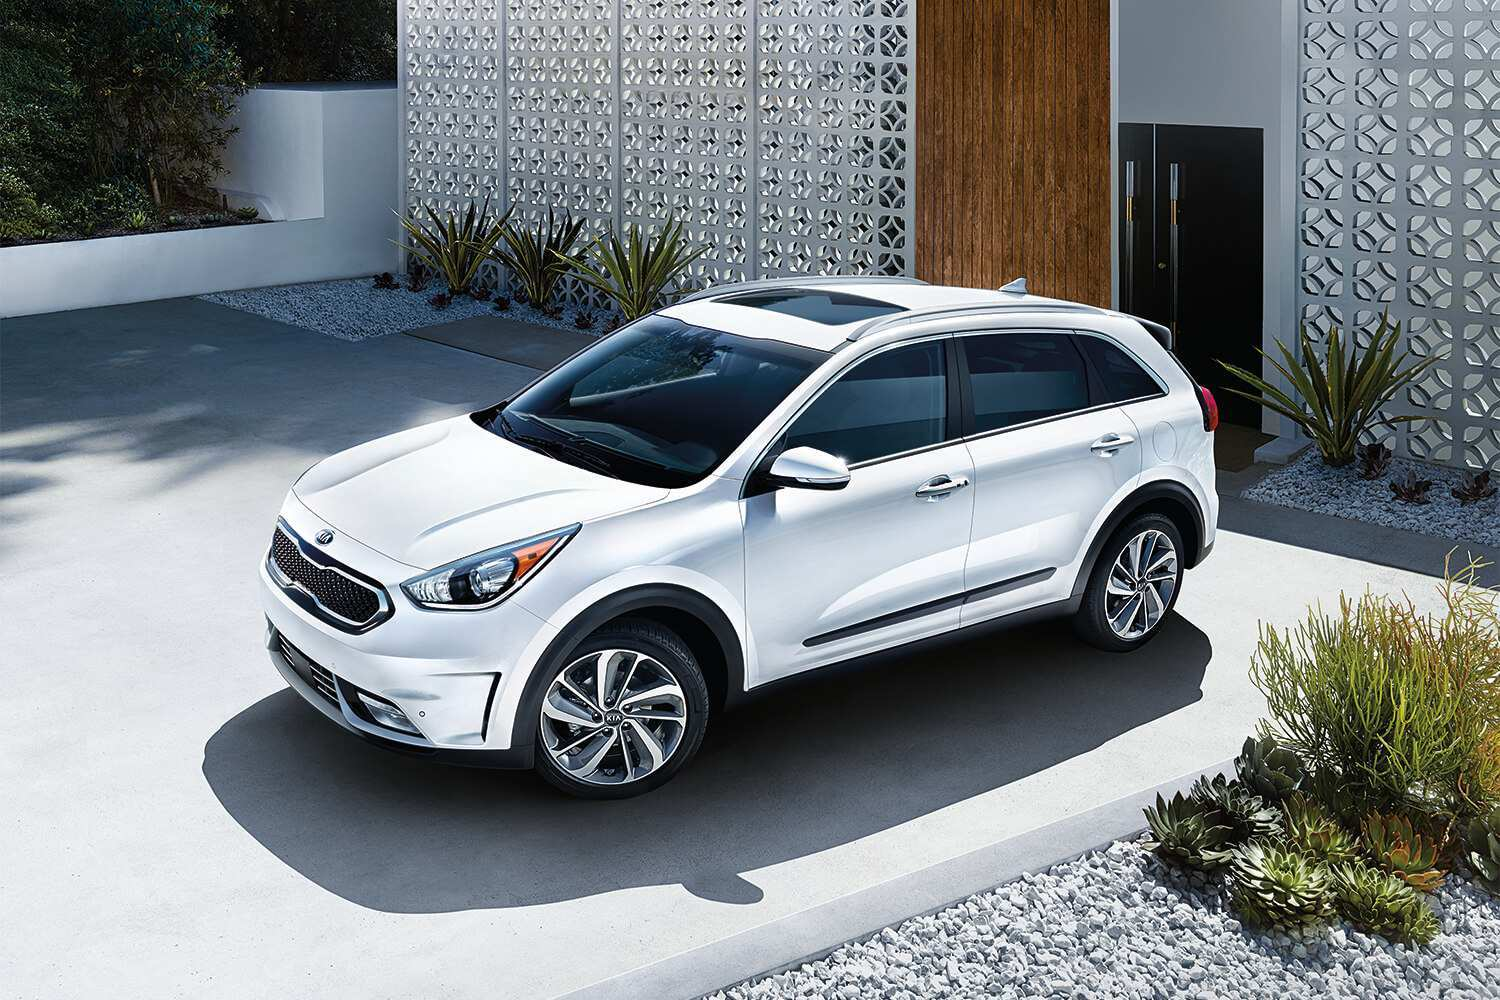 77 The Best Kia Niro 2019 Price And Release Date